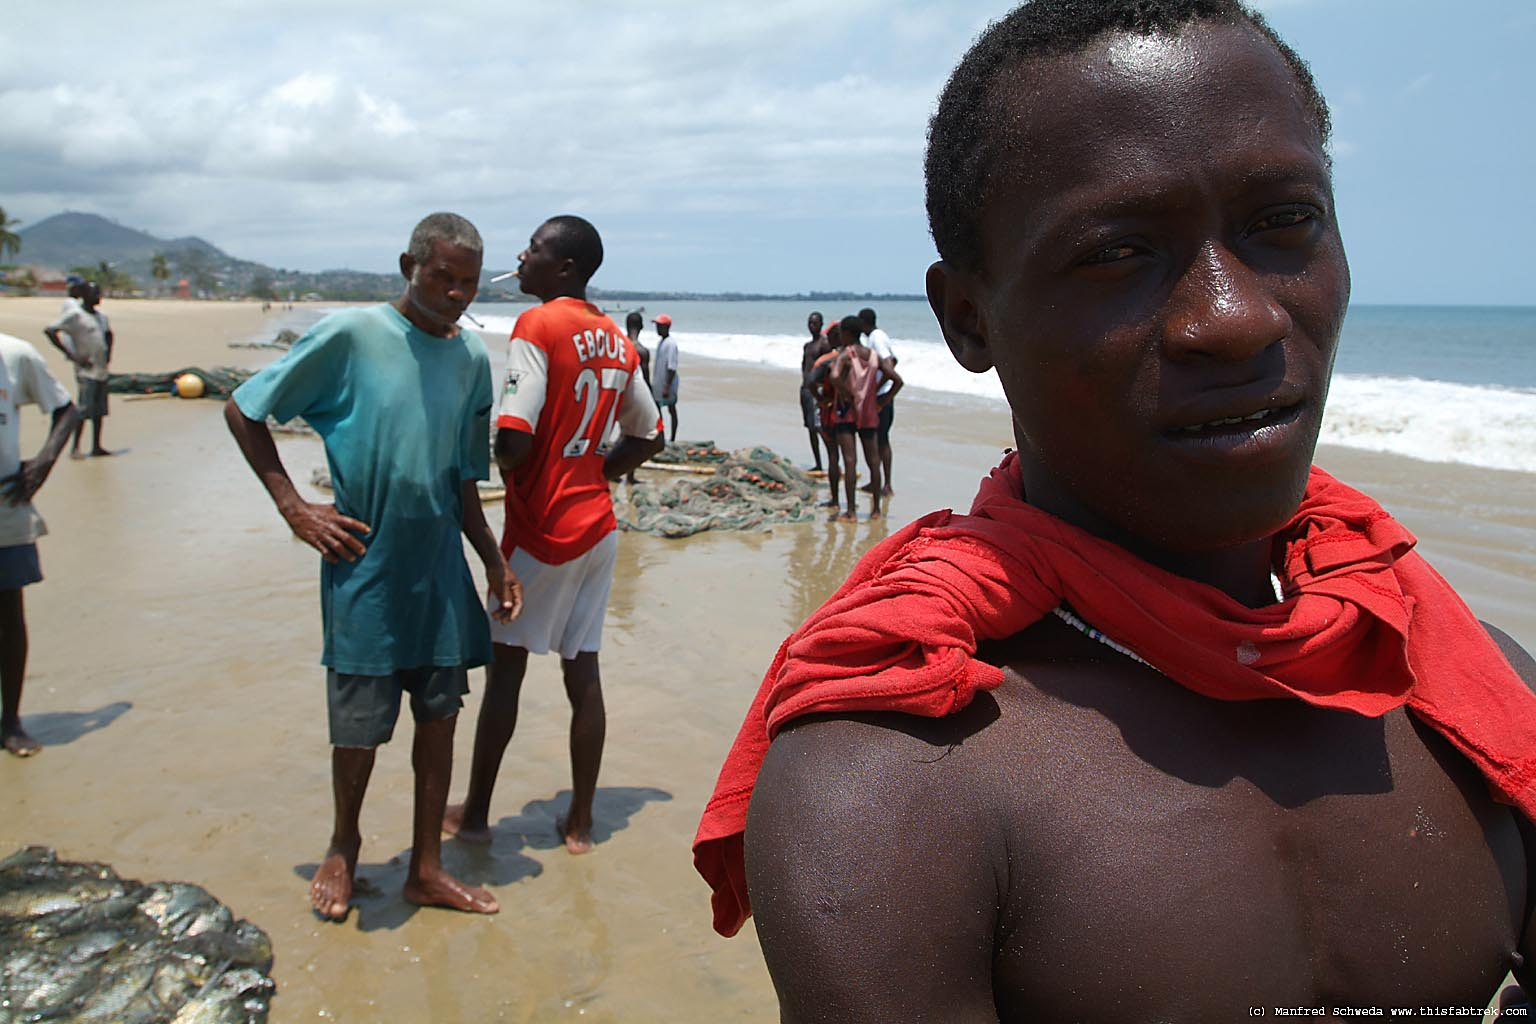 dating a sierra leone man A sierra leone woman the world's deadliest outbreak to date nigeria has put all its entry points on red alert after confirming the death there of a liberian man.